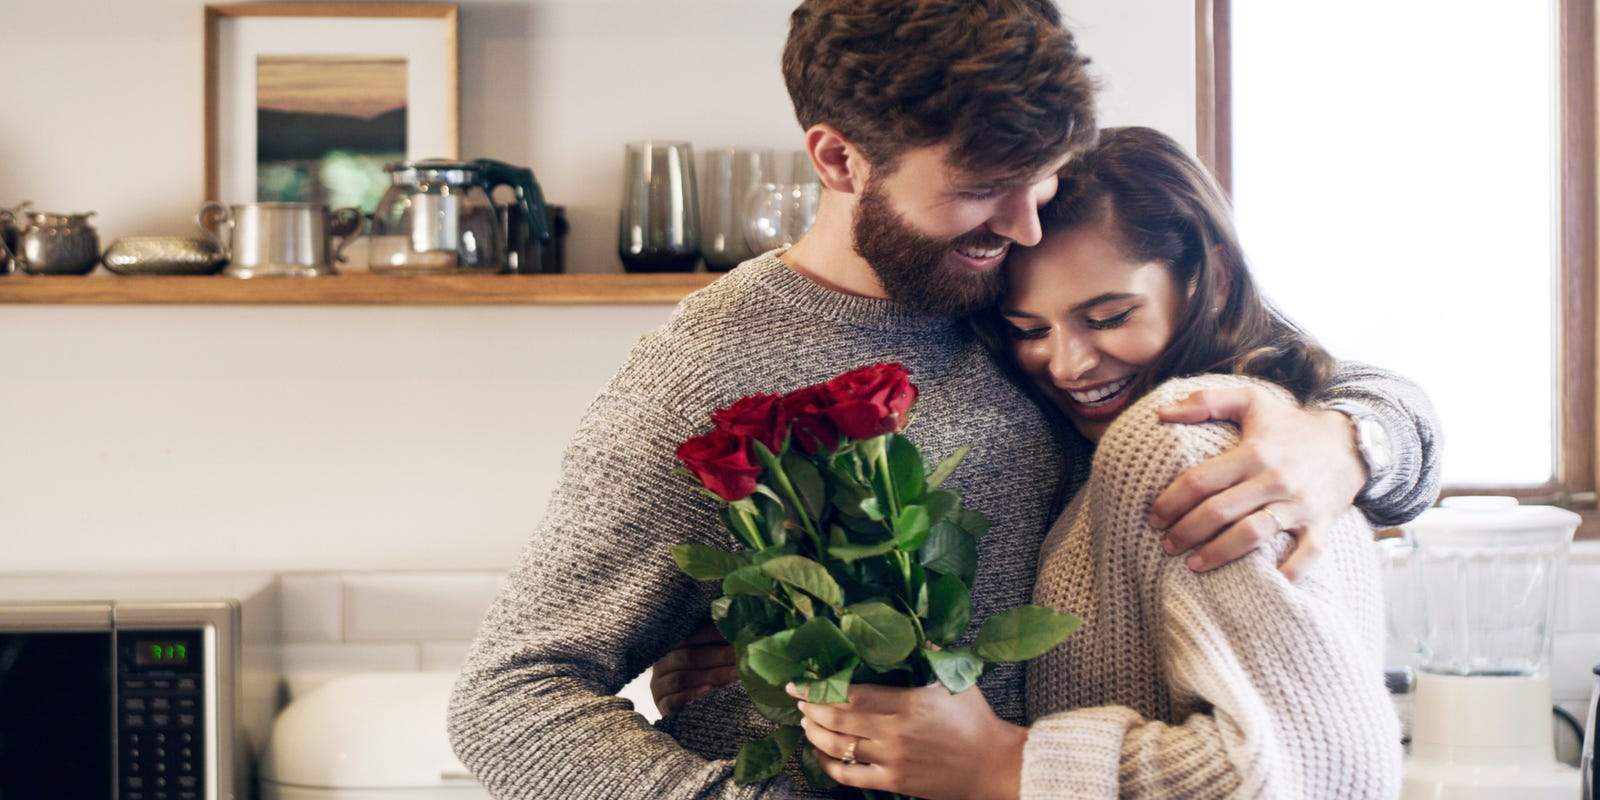 Best gifts for wives: Here are 50 thoughtful gift ideas she'll love